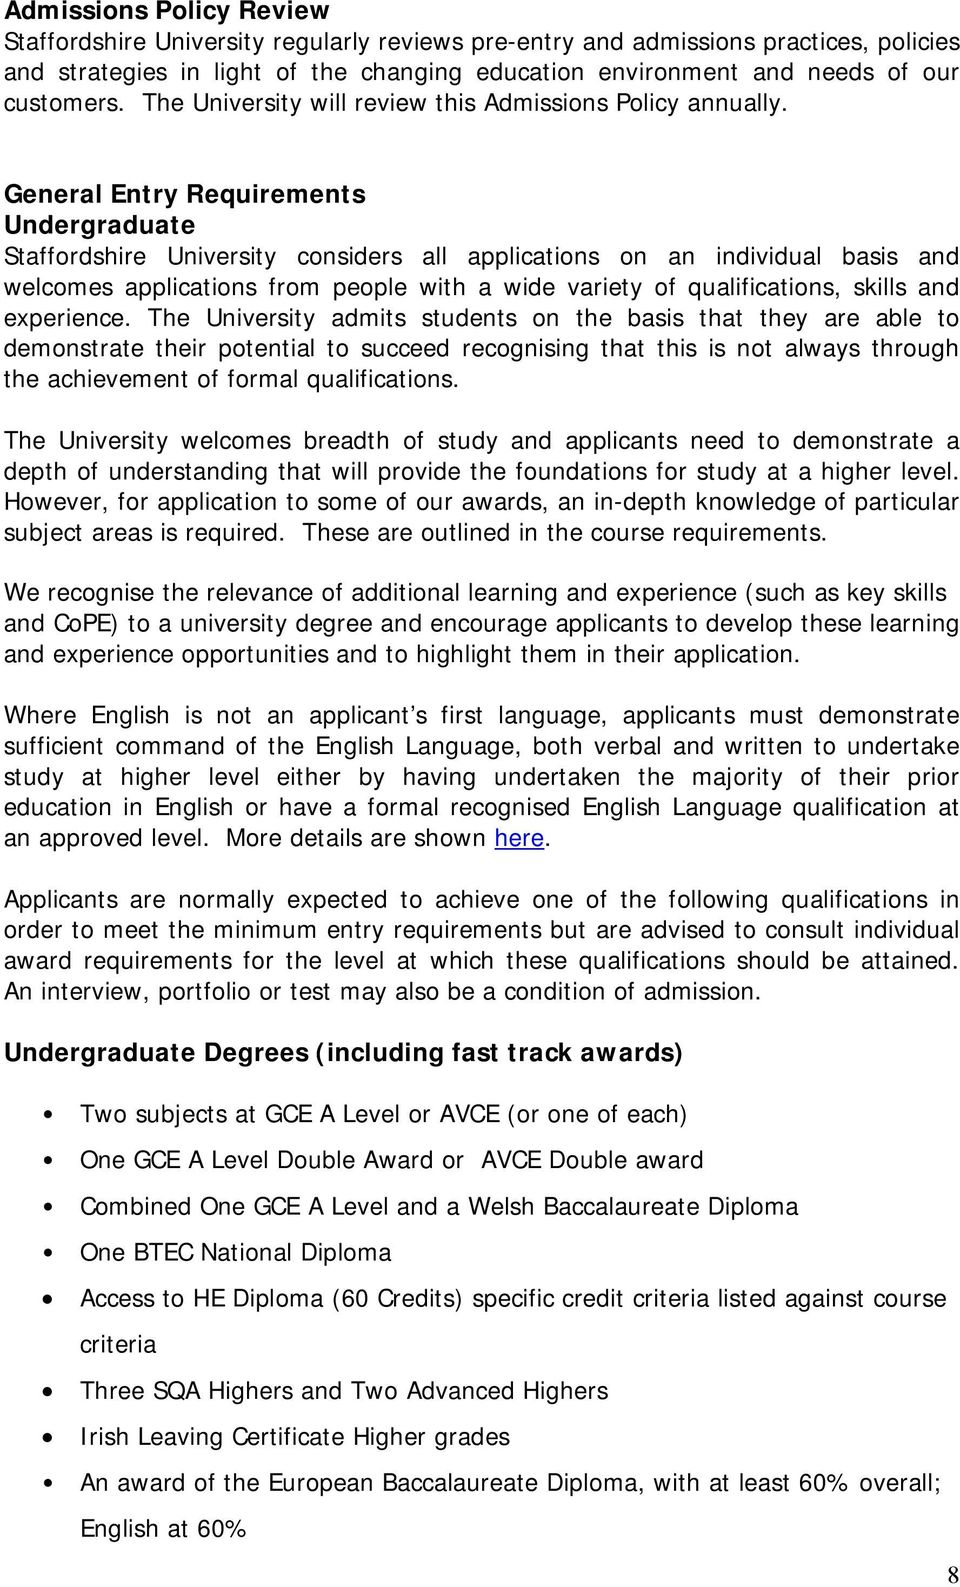 General Entry Requirements Undergraduate Staffordshire University considers all applications on an individual basis and welcomes applications from people with a wide variety of qualifications, skills